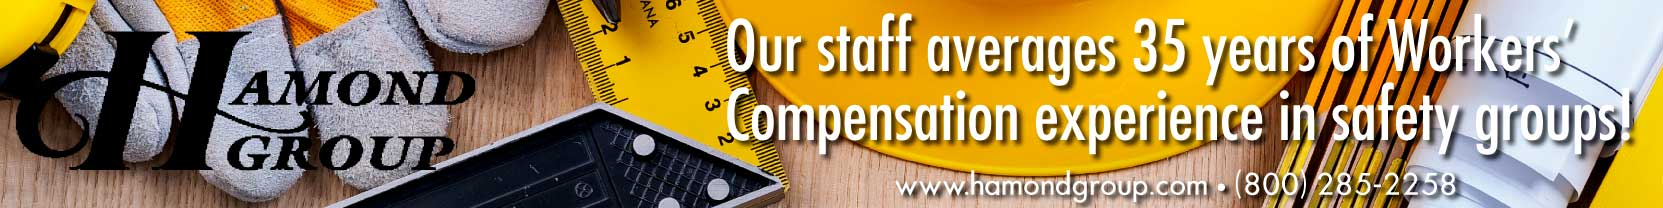 Average 35 years of Workers Compensation experience!